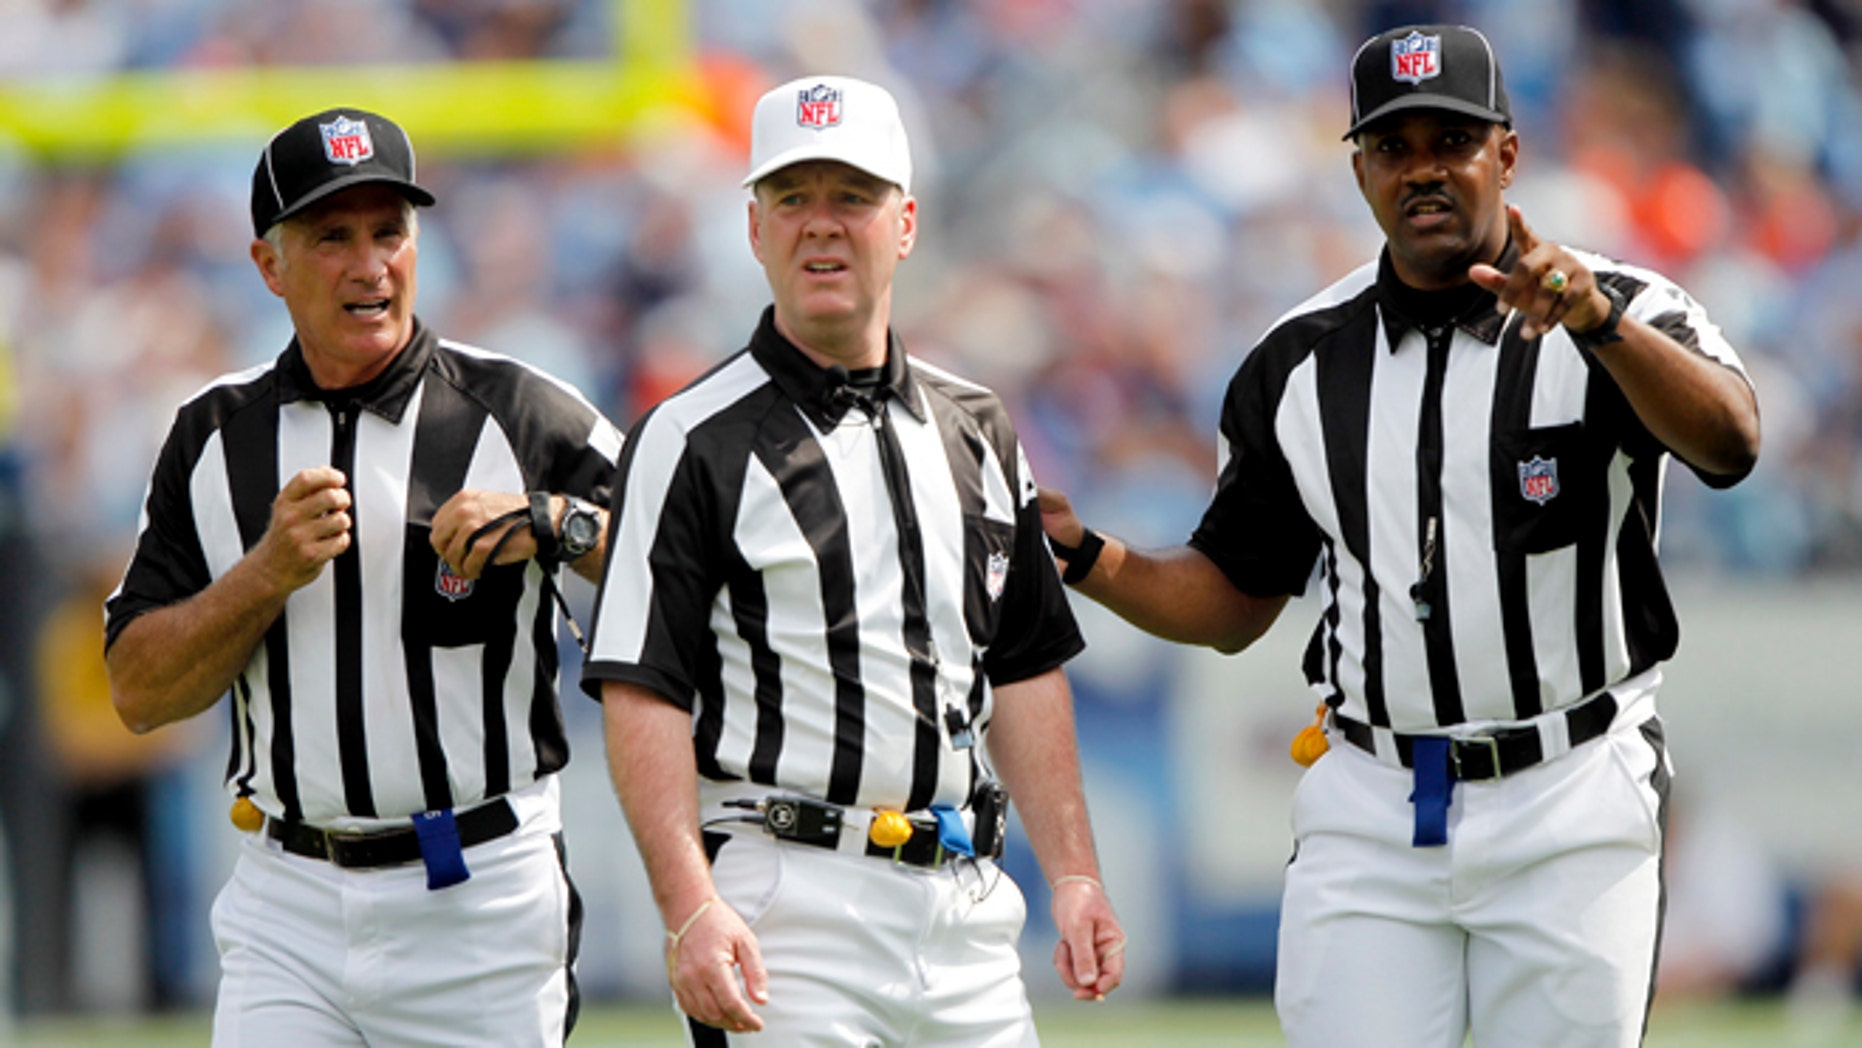 FILE - In this Sept. 25, 2011, file photo, officials confer in the third quarter of an NFL football game between the Denver Broncos and the Tennessee Titans in Nashville, Tenn. The NFL and referees' union reached a tentative agreement on Wednesday, Sept. 26, 2012, to end a three-month lockout that triggered a wave of frustration and anger over replacement officials and threatened to disrupt the rest of the season. (AP Photo/Wade Payne, File)